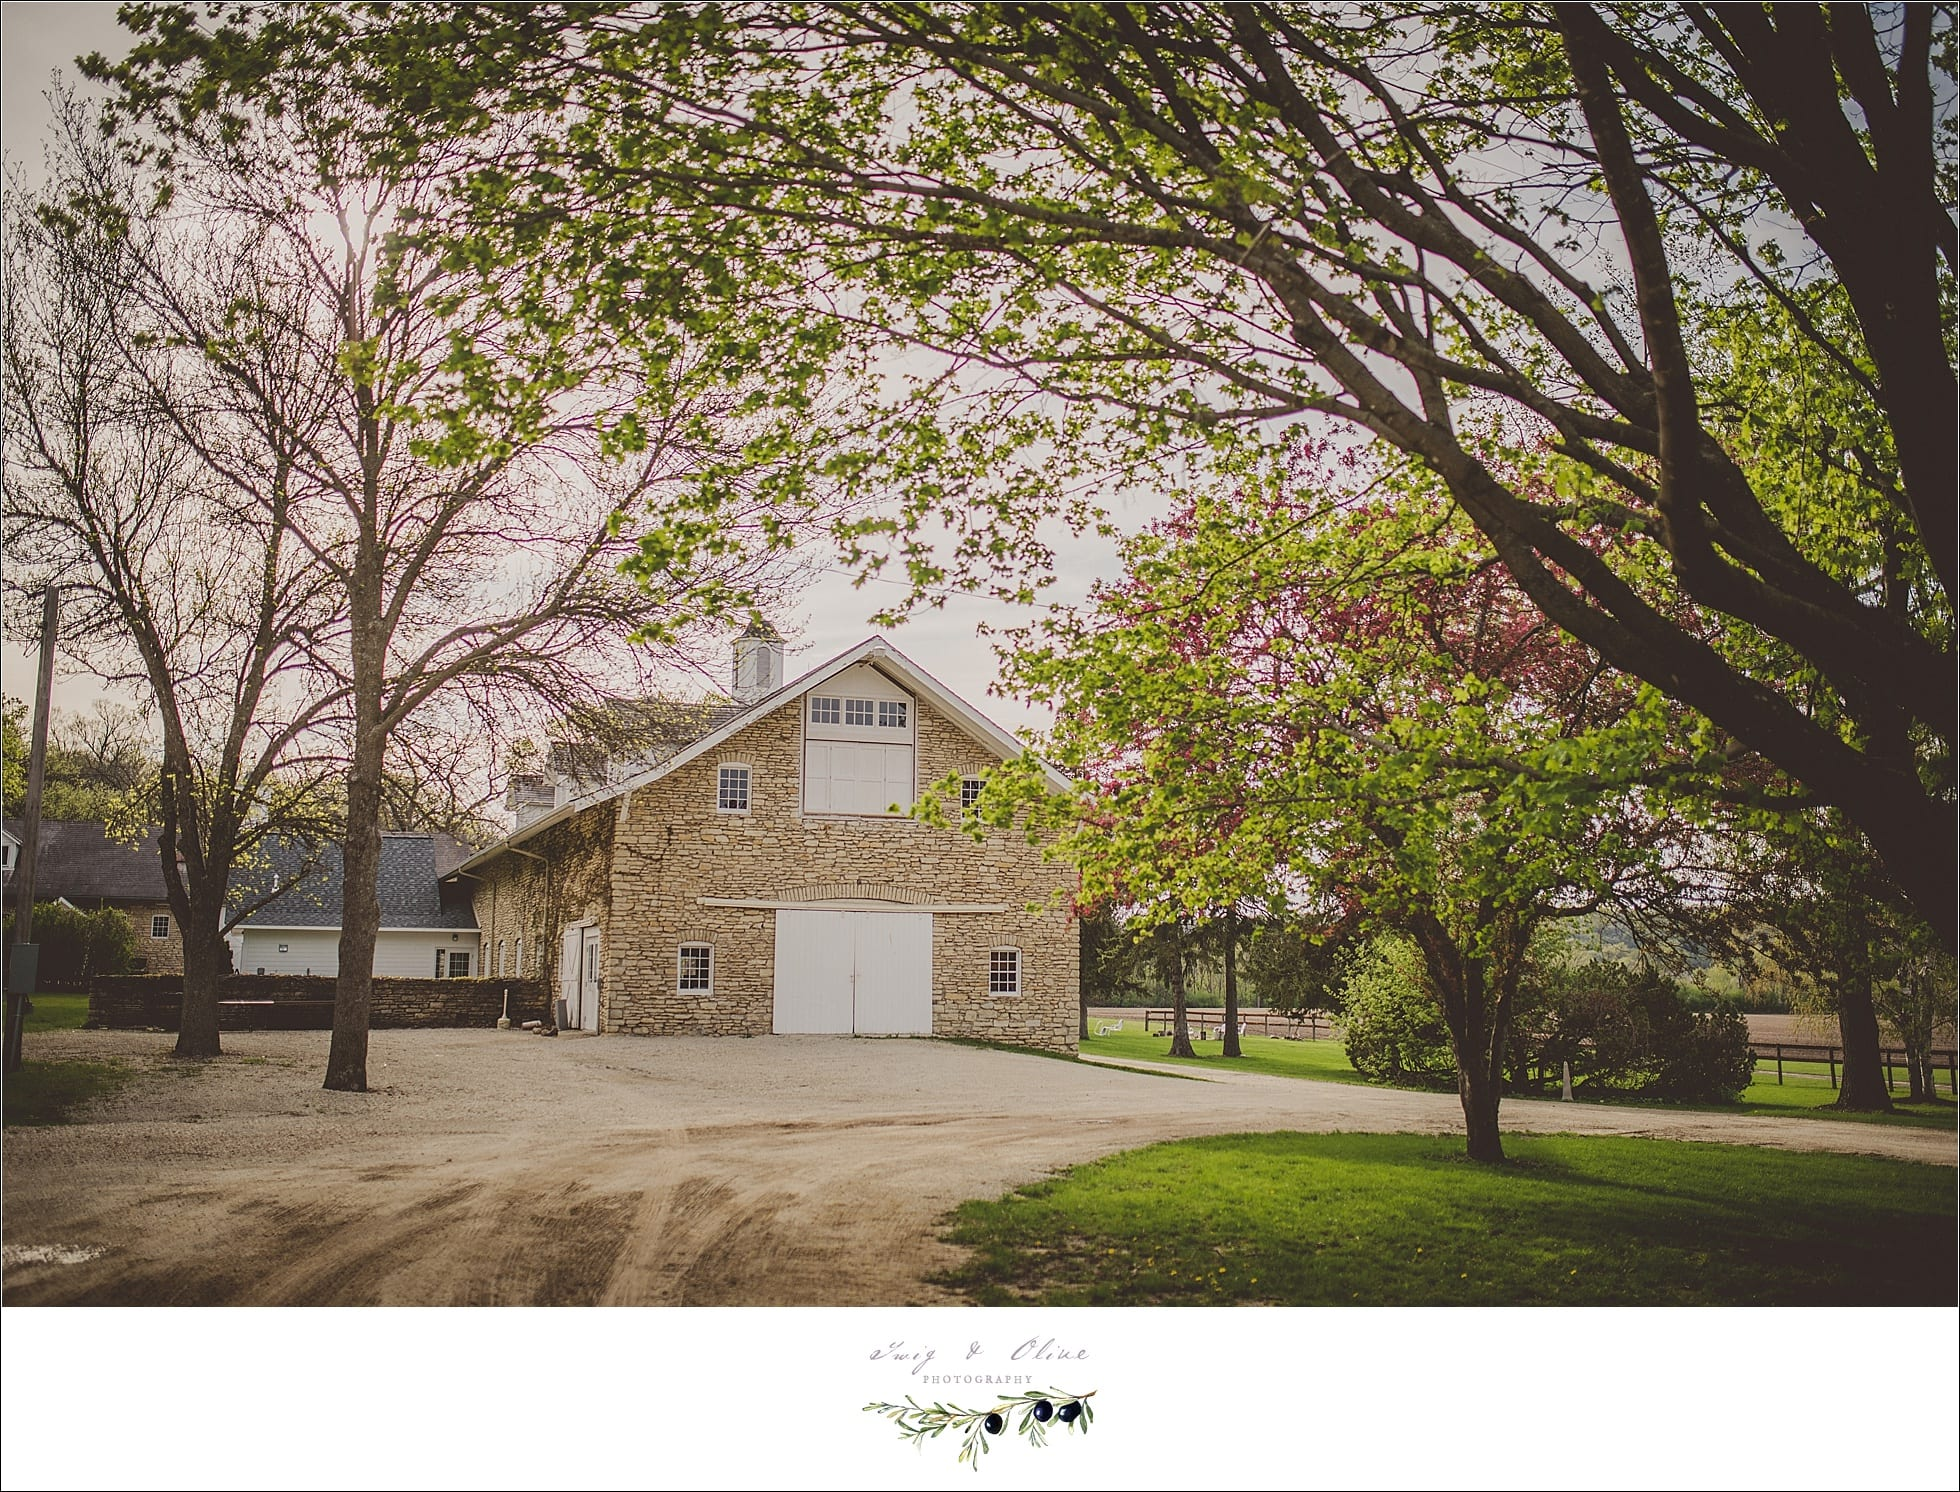 rustic barns, trees, blooms, blossoms, Rochester to Sun Prairie